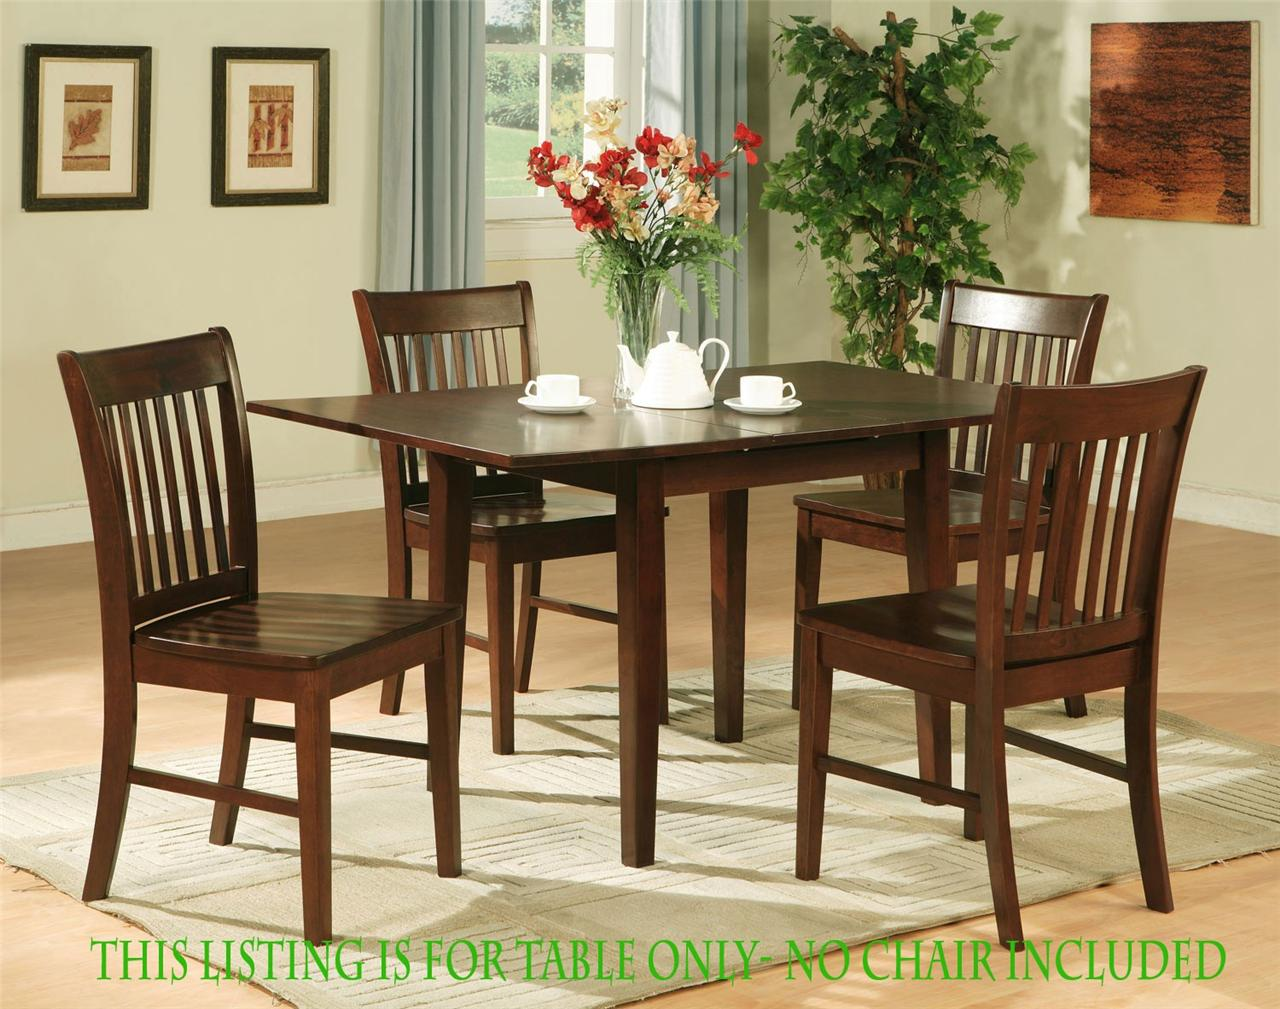 1 rectangular dinette kitchen dining table 32x54 w 12 butterfly leaf mahogany ebay - Round kitchen table with butterfly leaf ...